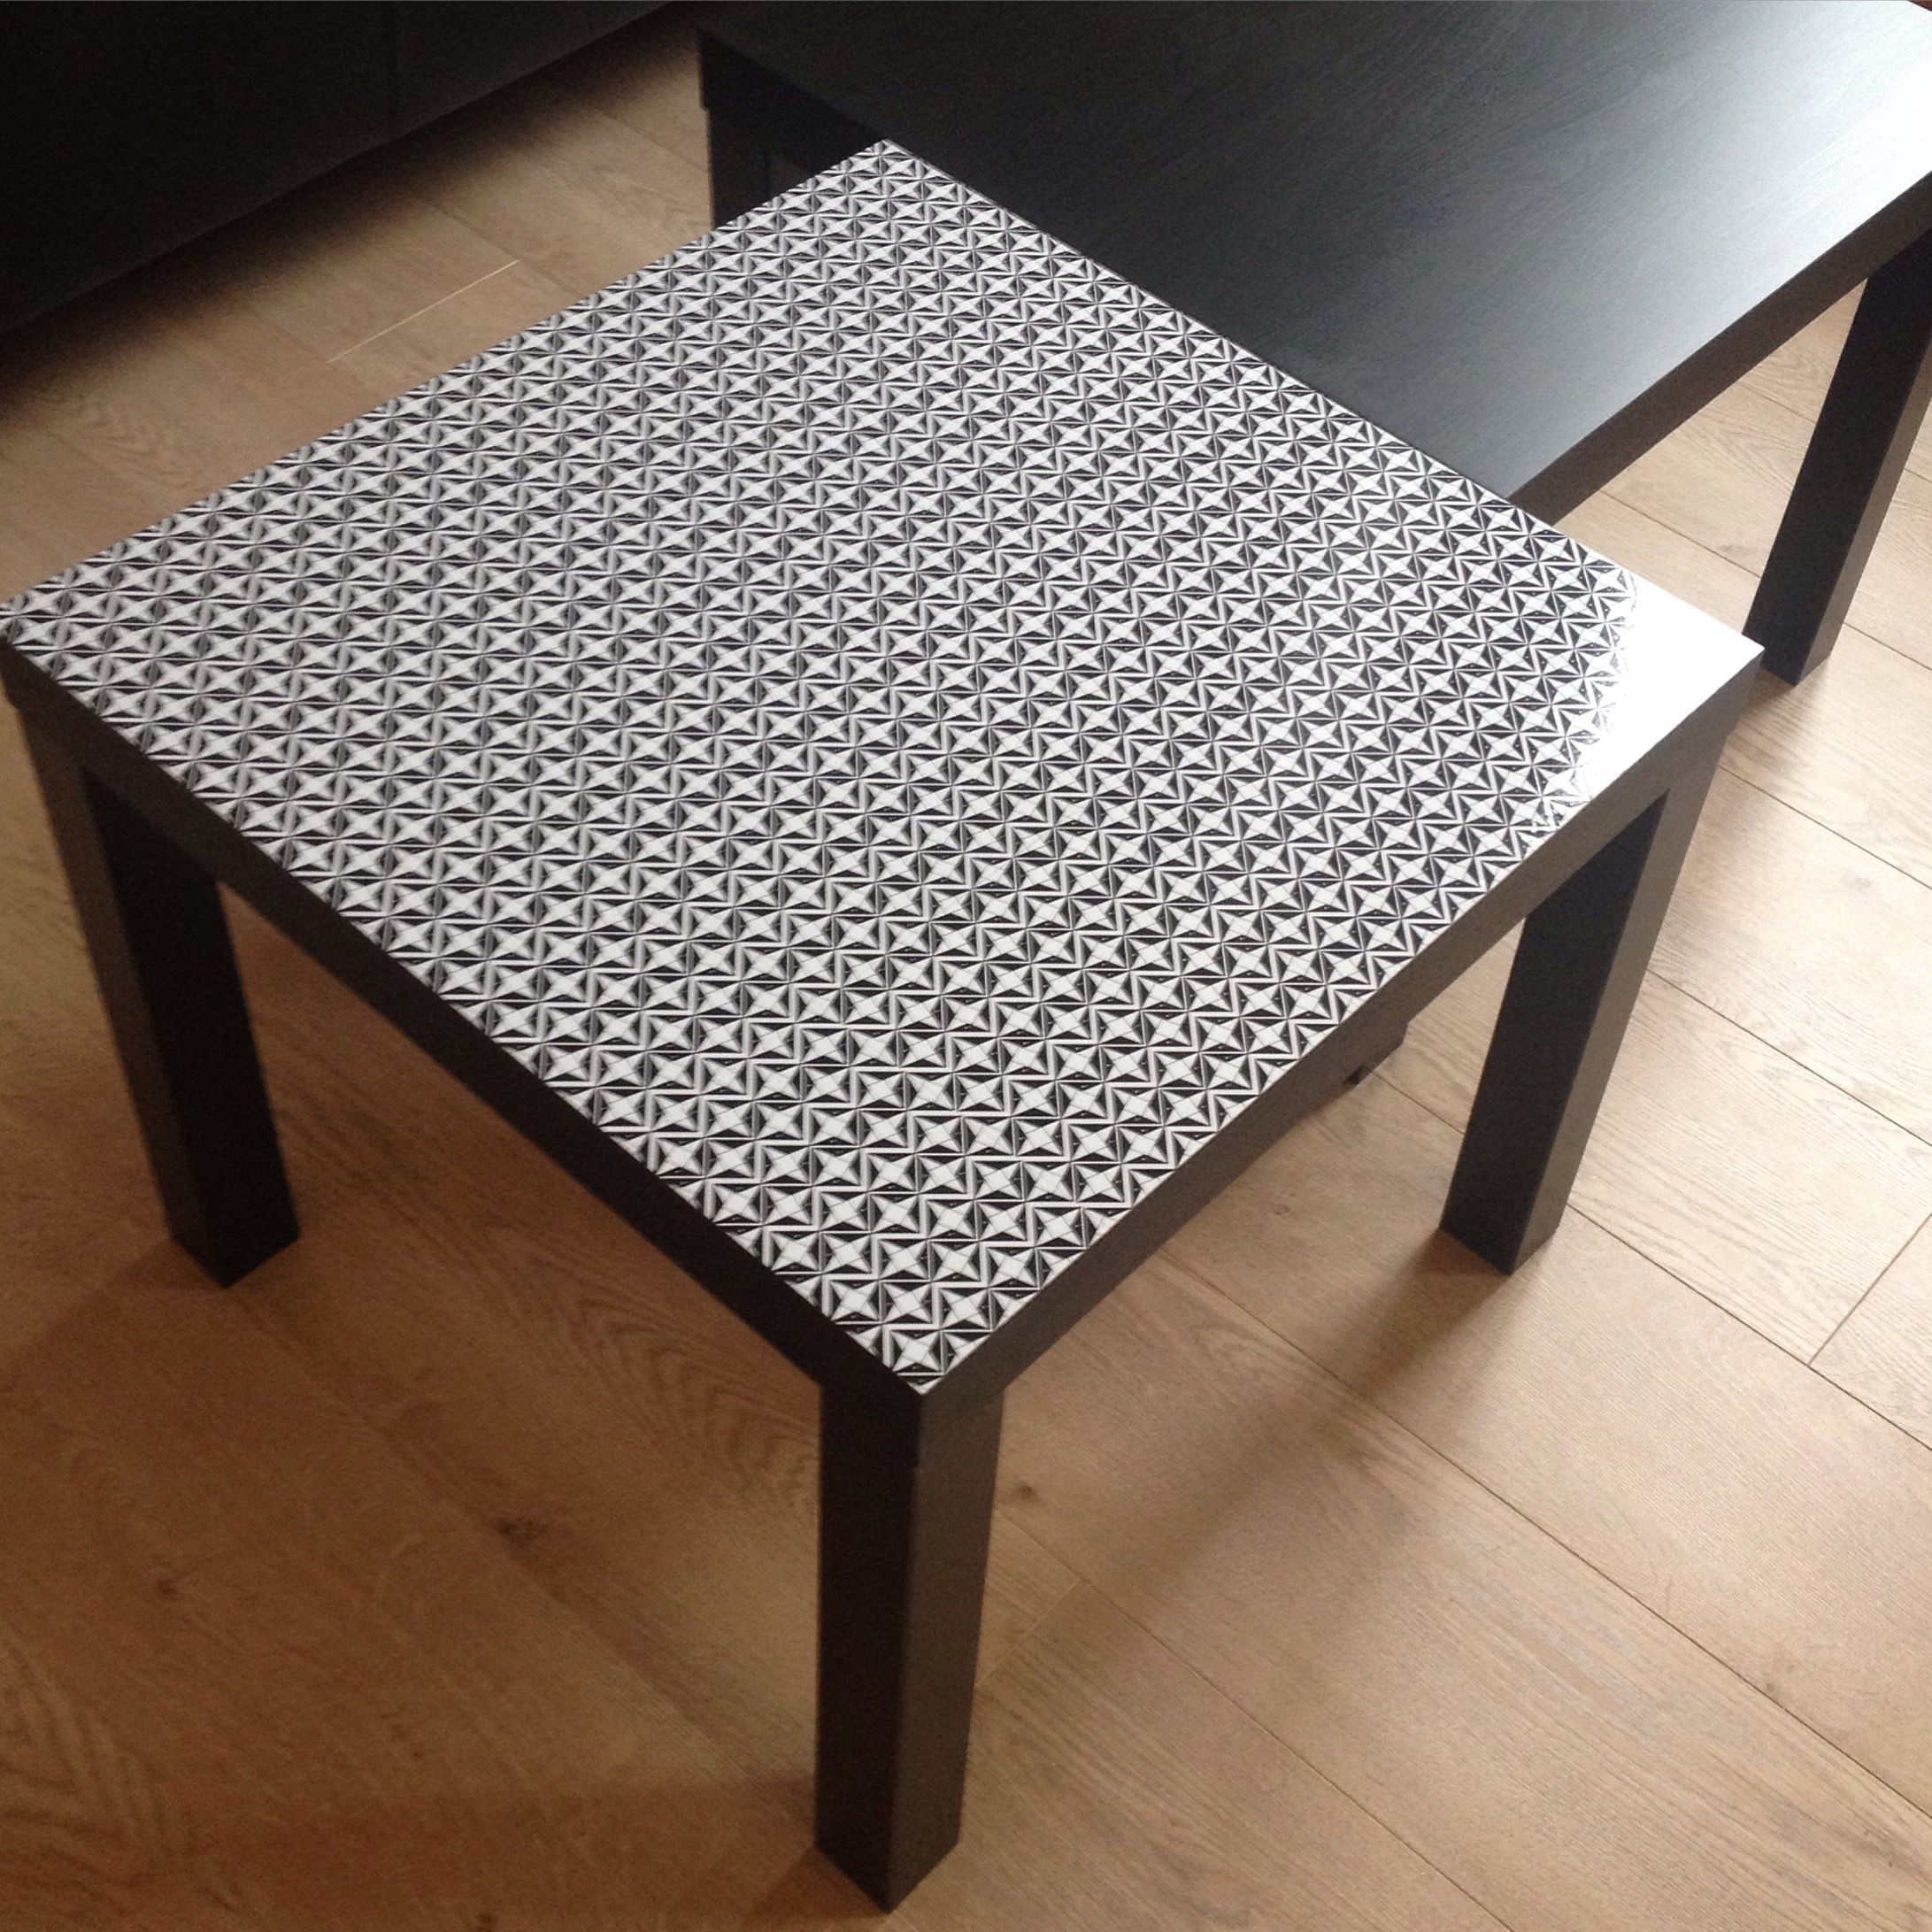 La C L Bre Petite Table Carr E Ikea Dominot